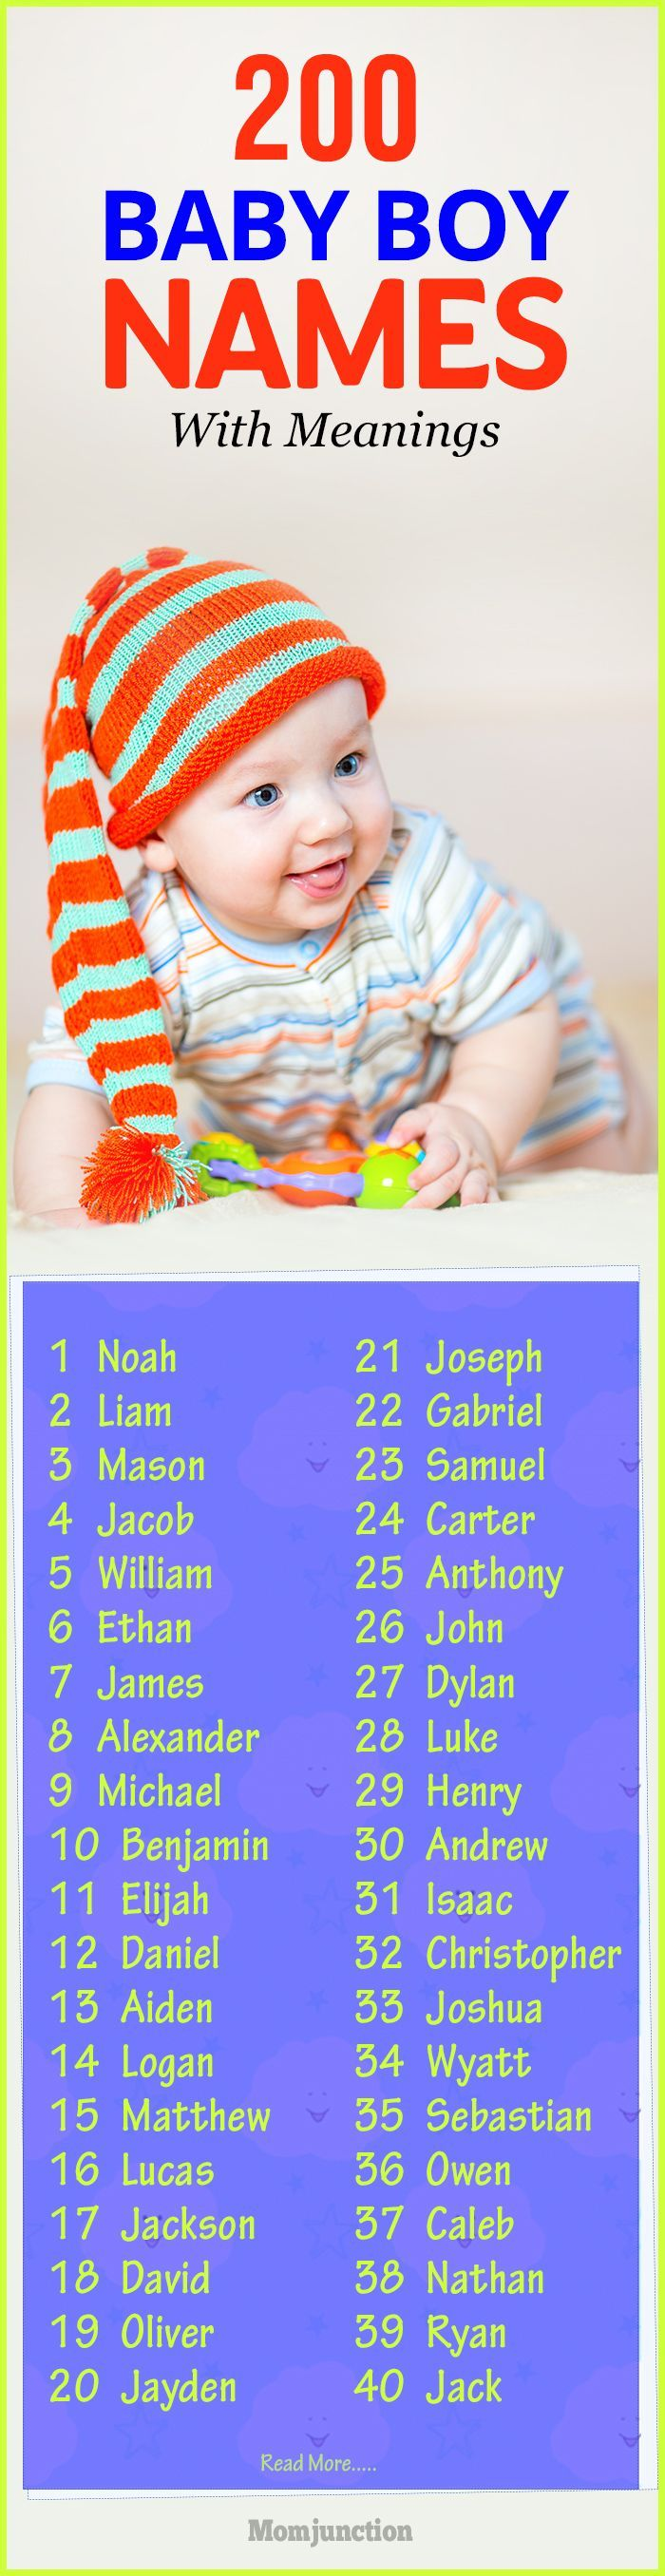 babyinfocenter.com: Cool Baby Names Cute Baby Boy Names Top 100 Baby Names  Meanings